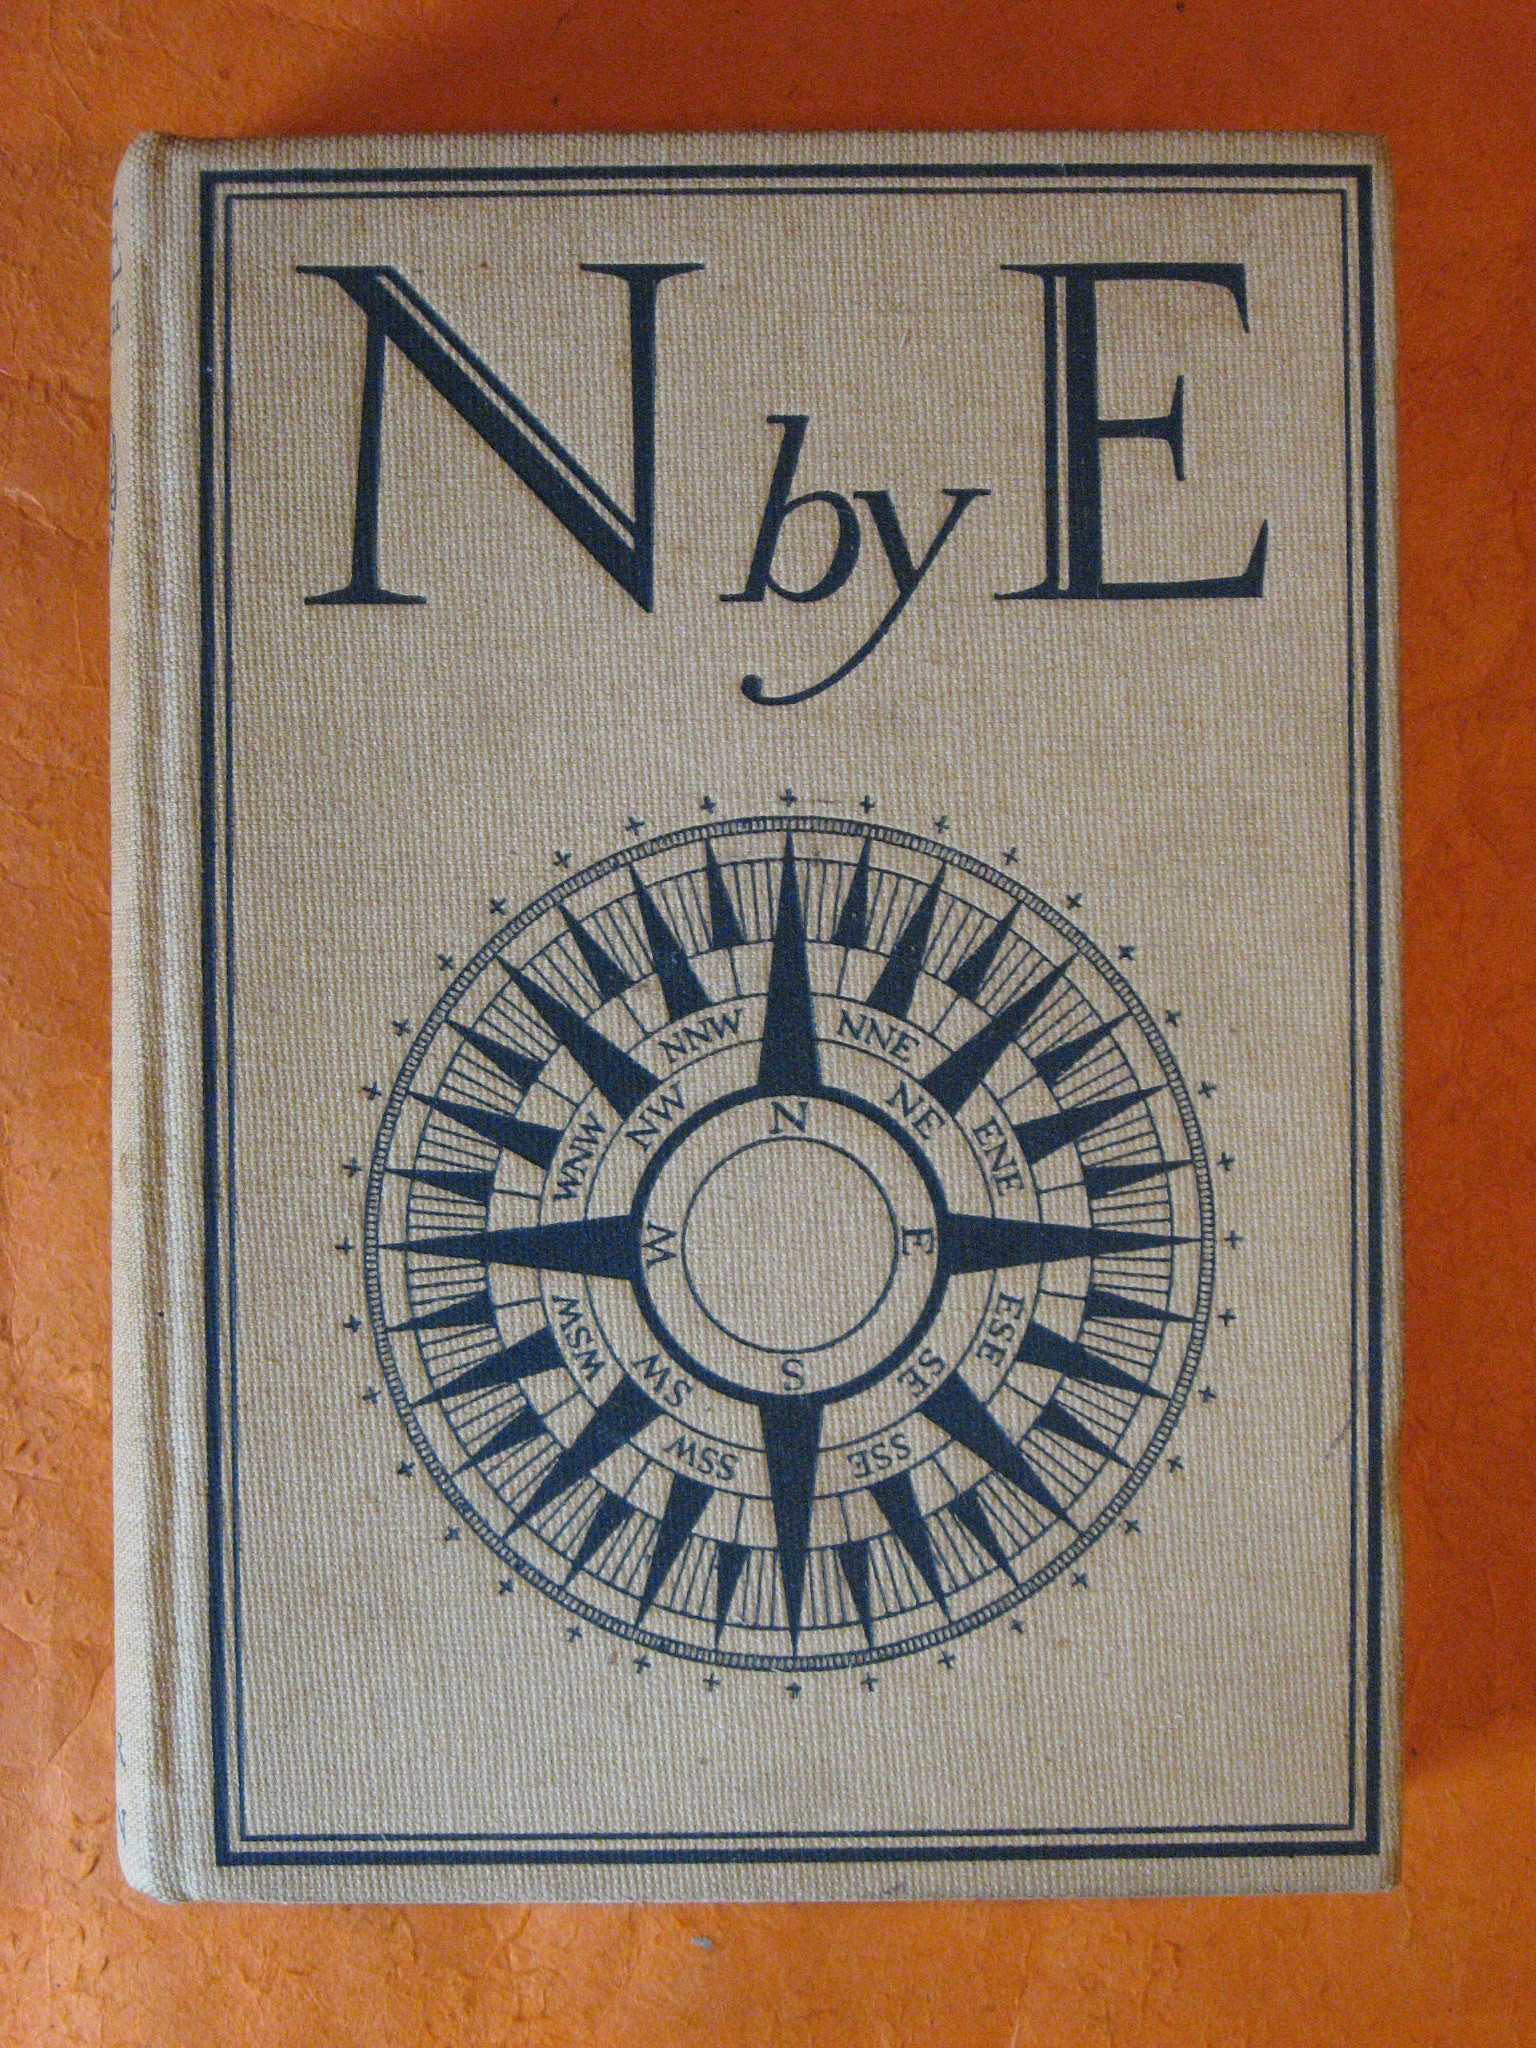 N by E, Kent, Rockwell